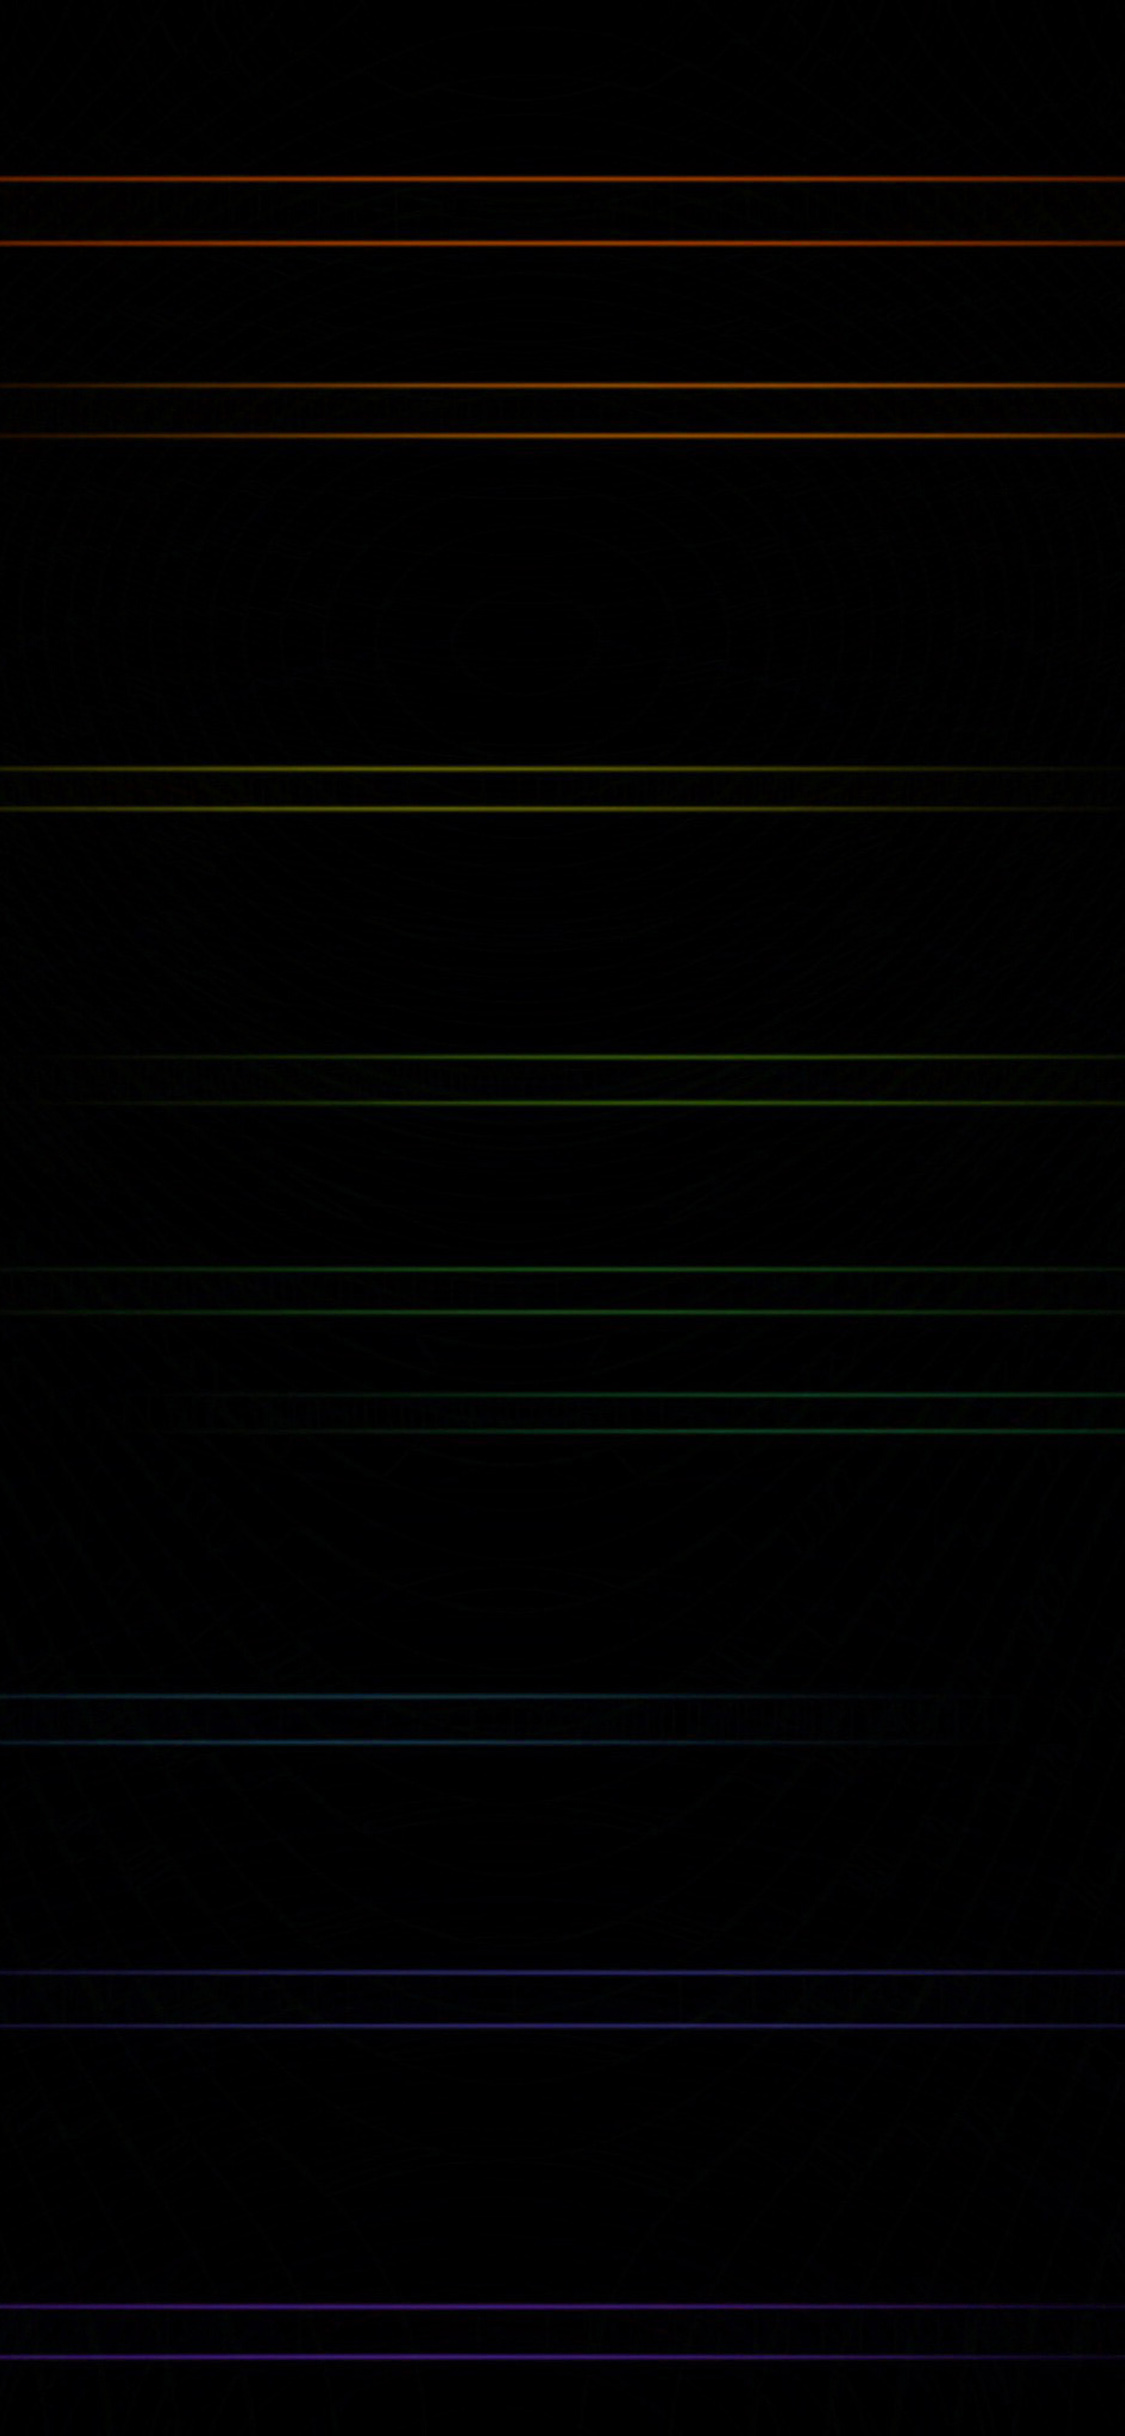 iPhoneXpapers.com-Apple-iPhone-wallpaper-vu14-line-dark-color-pattern